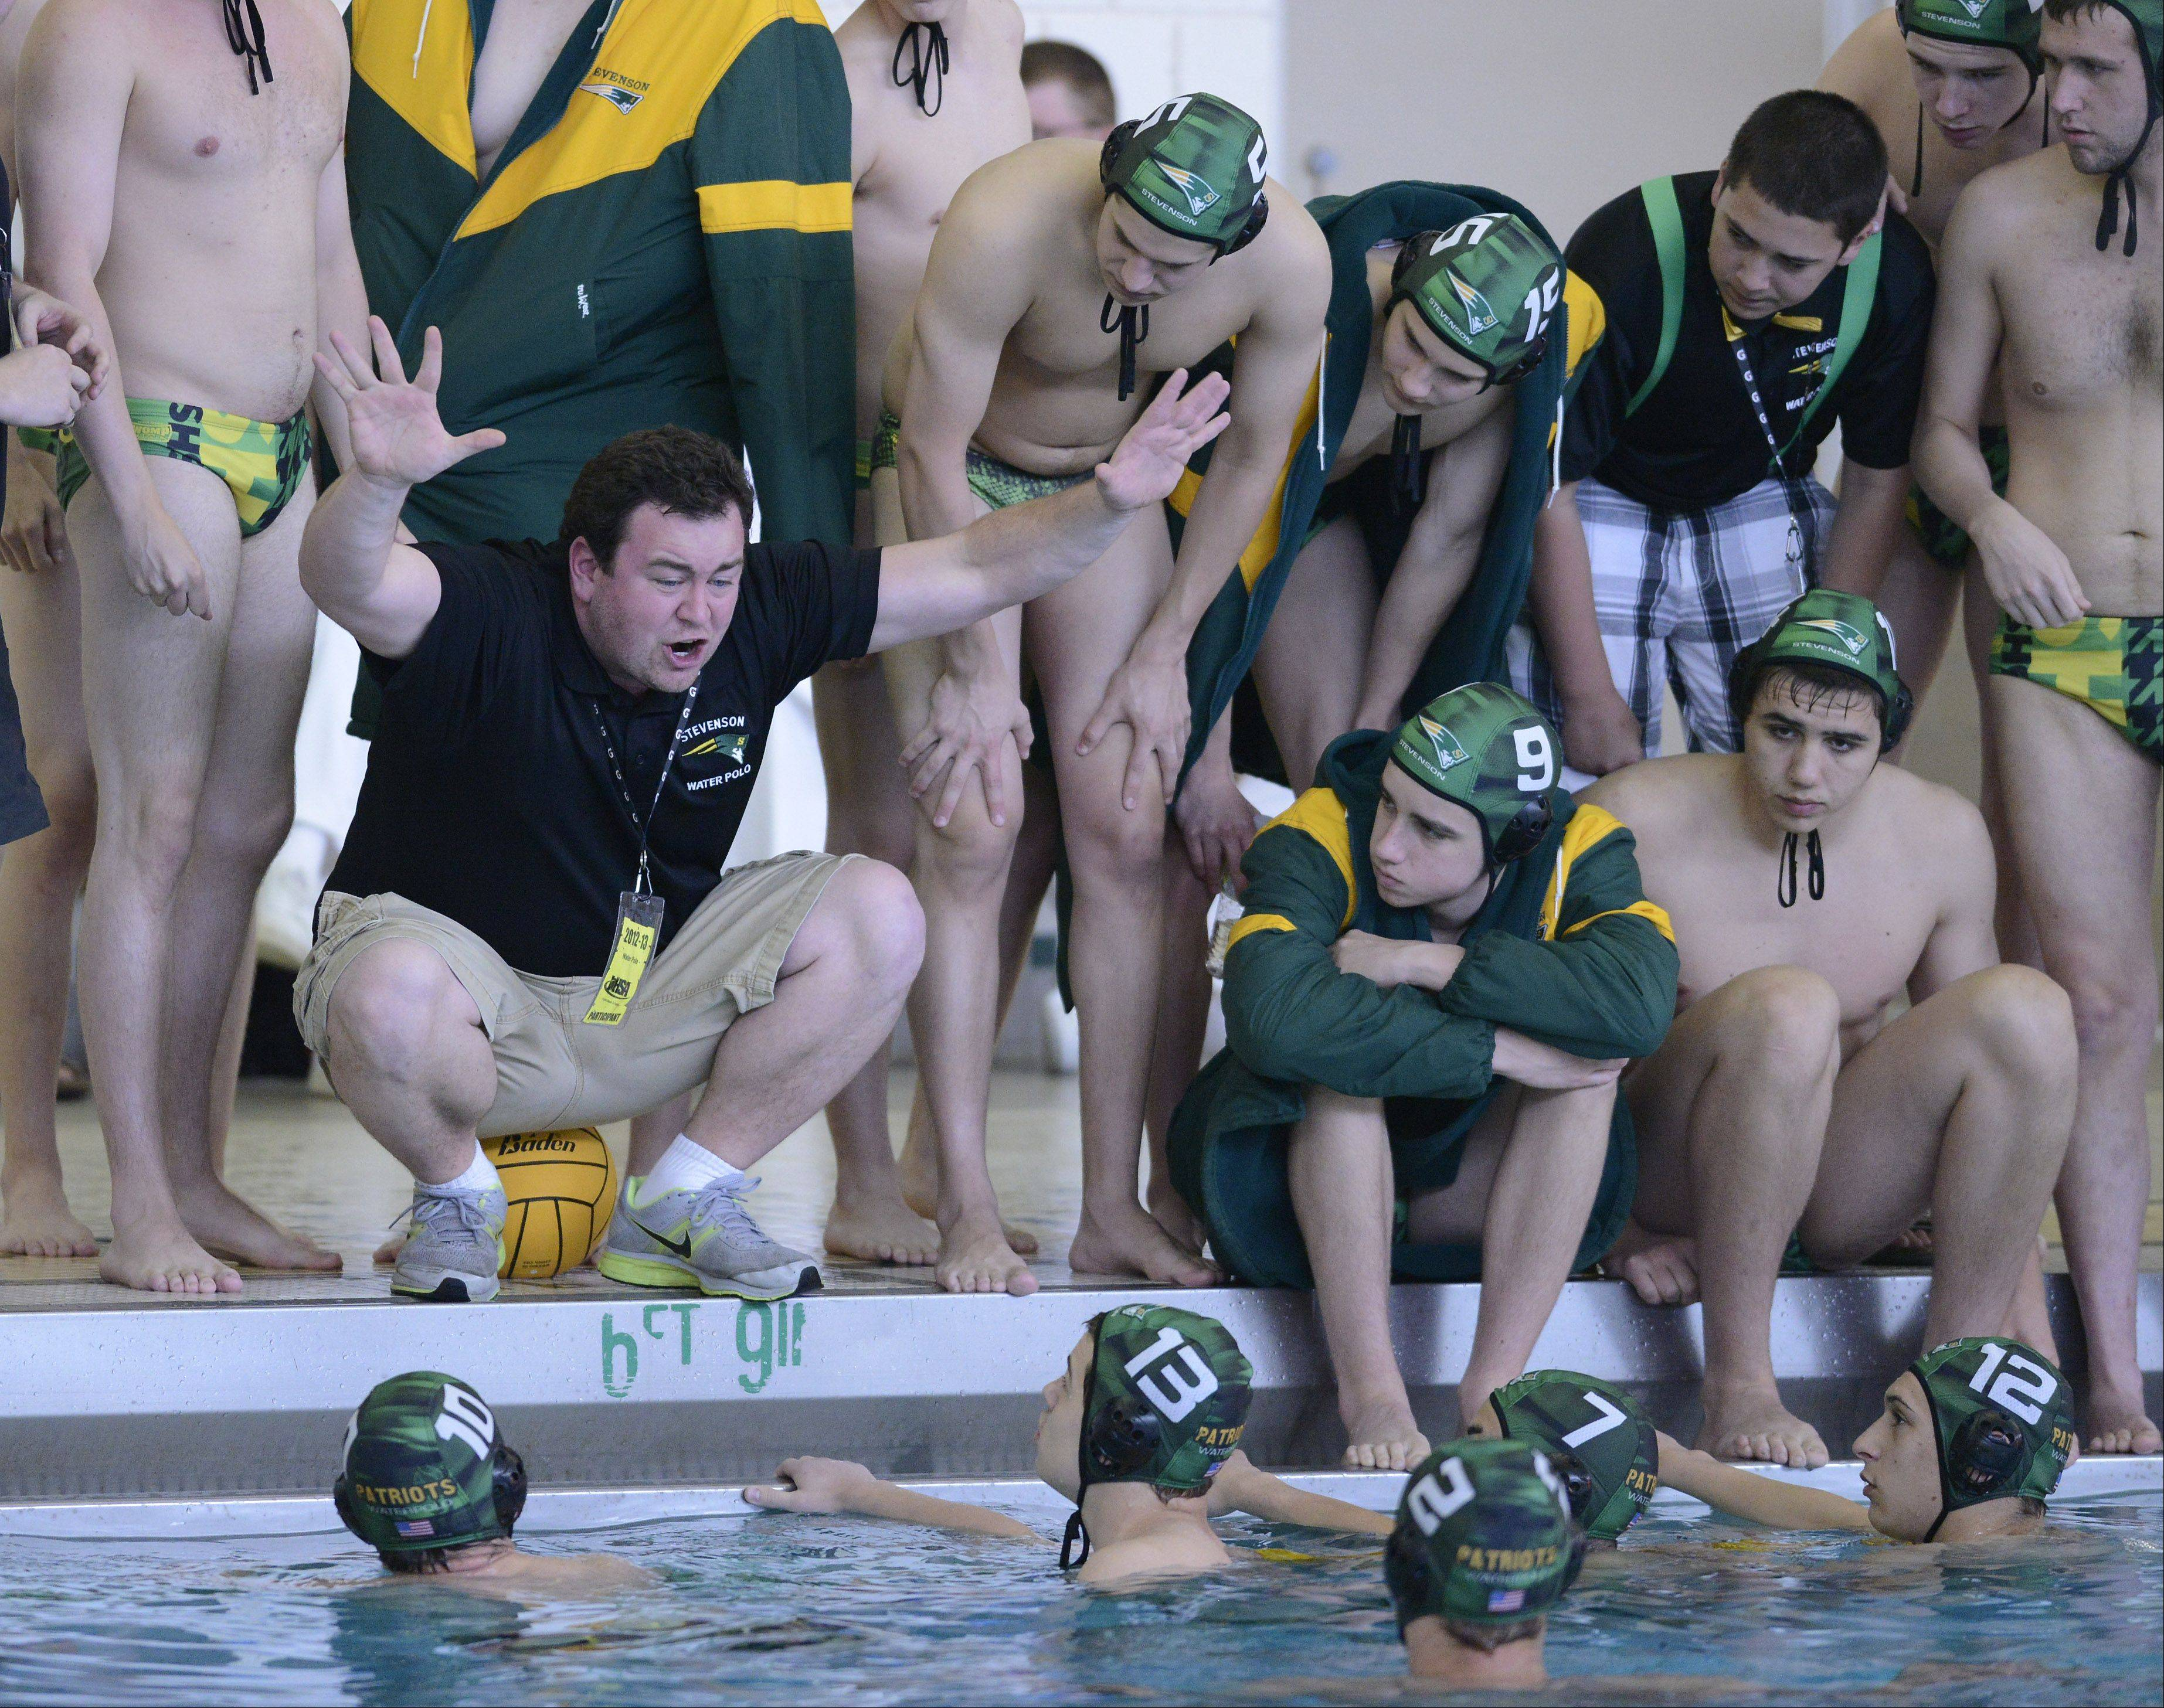 Stevenson coach Sean Wimer leads his team during the boys water polo state semifinal against St. Ignatius at Stevenson on Saturday.